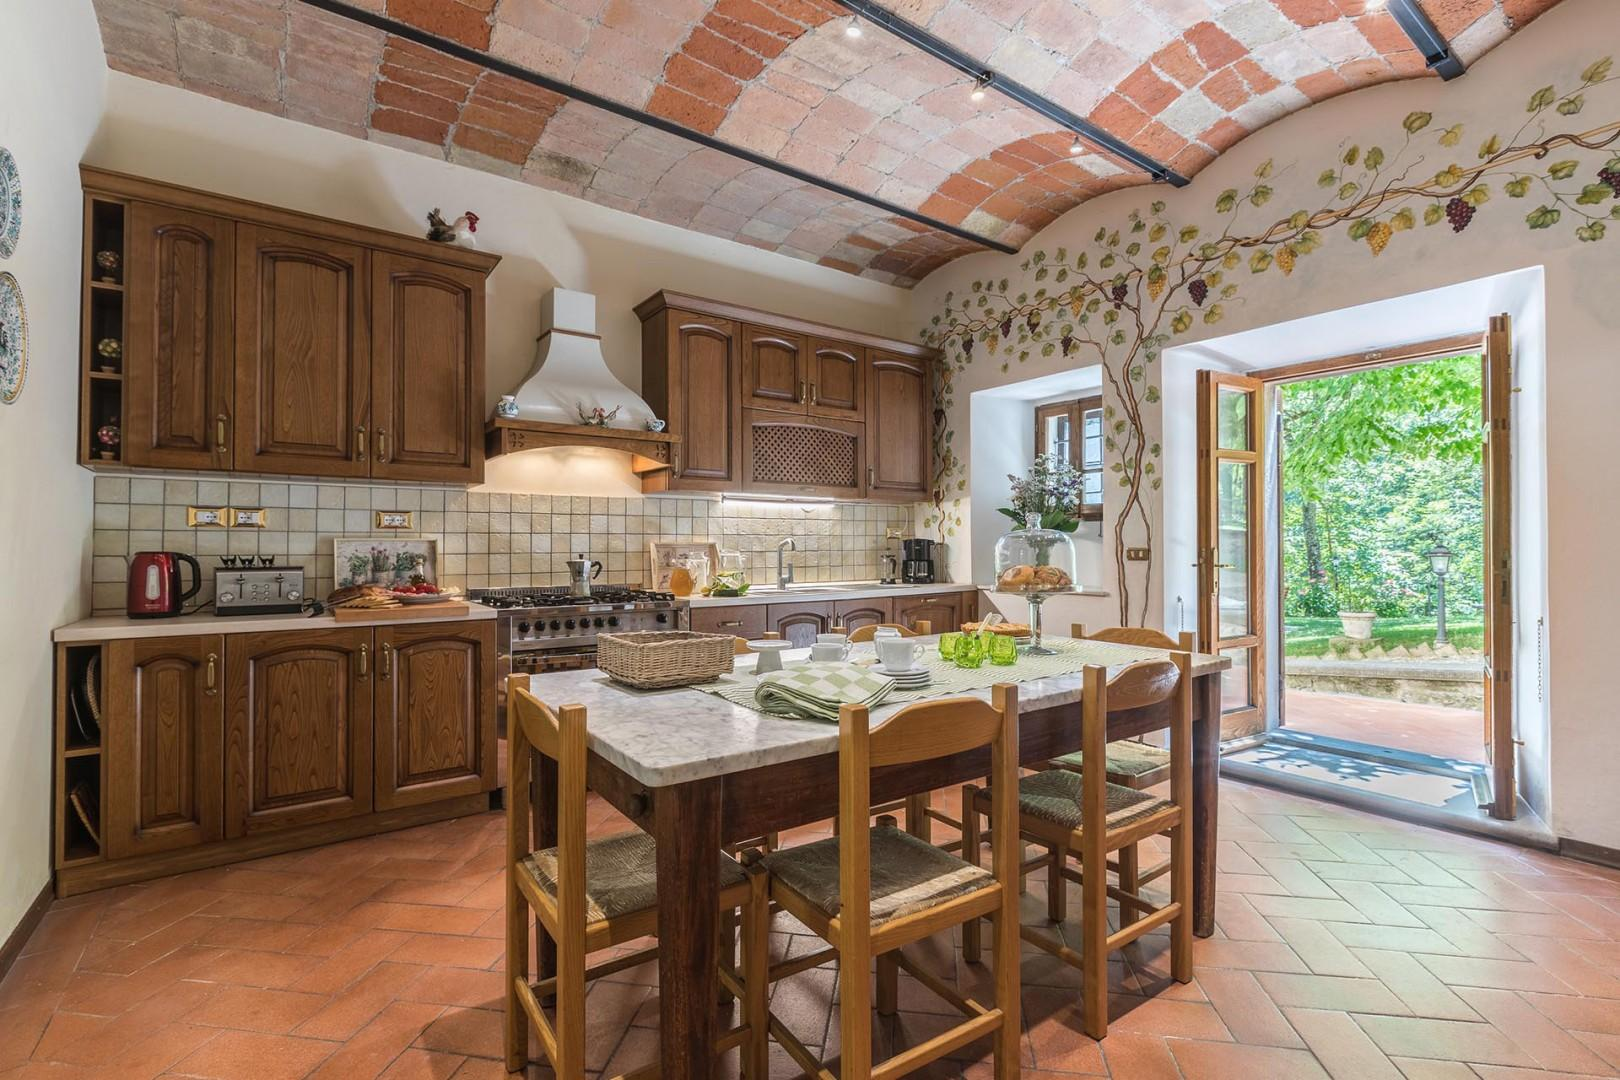 Roomy kitchen with all the amenities you need to prepare delicious meals.